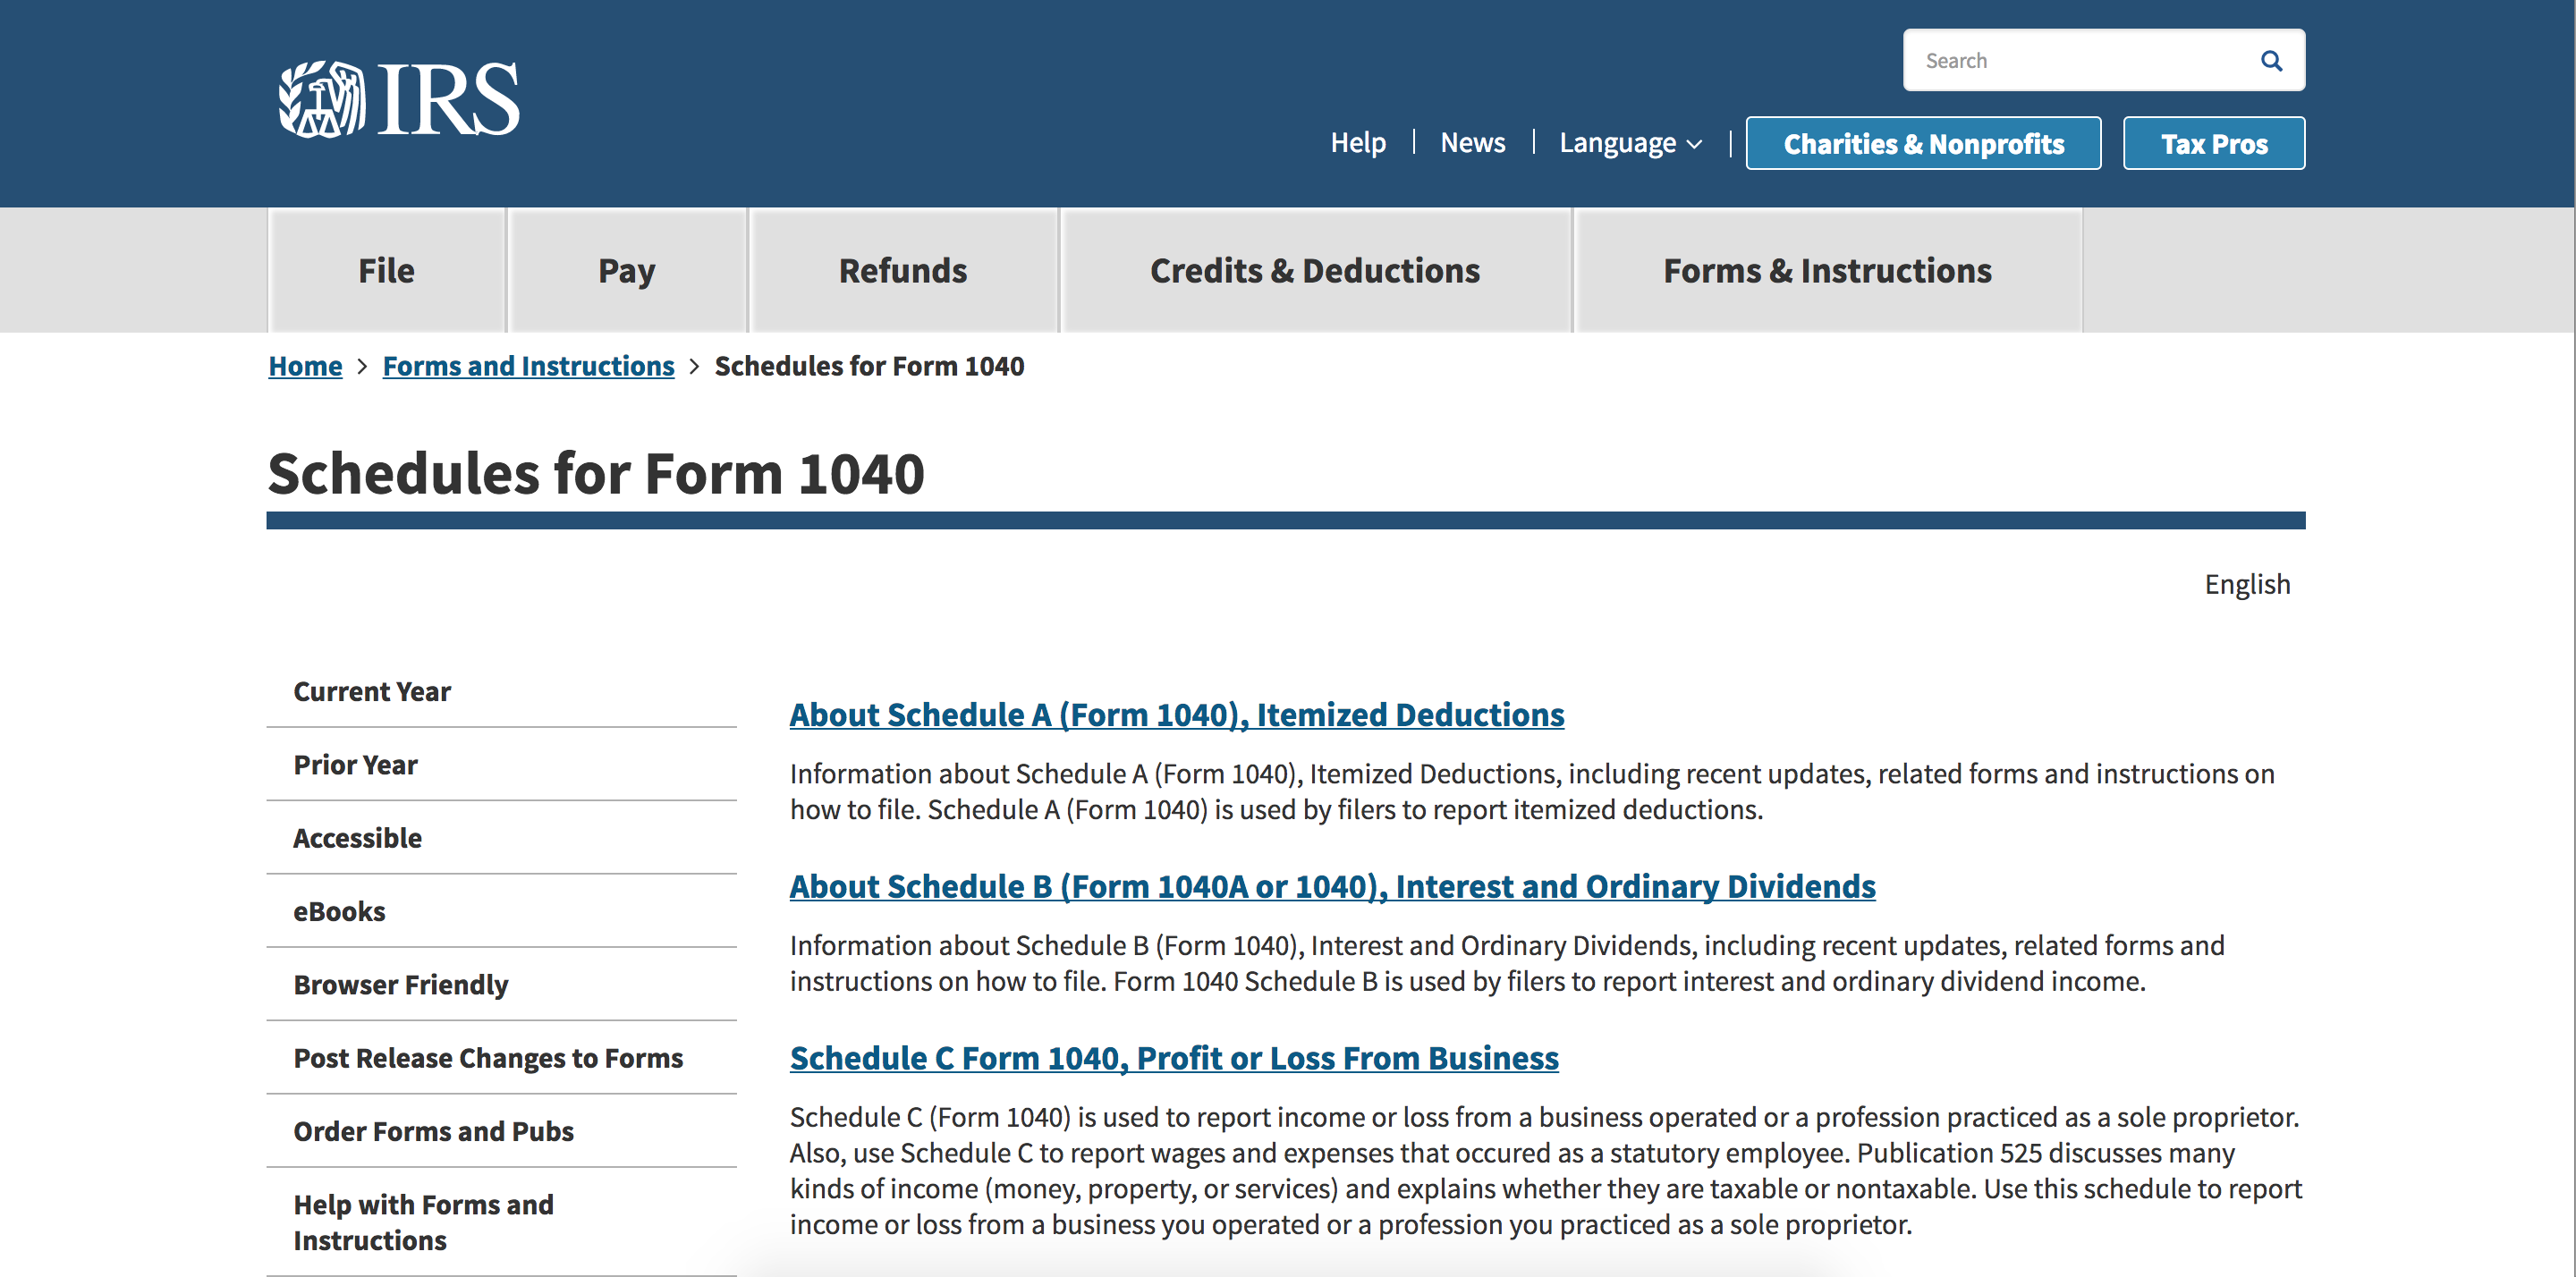 Screenshot of IRS Website & Form 1040